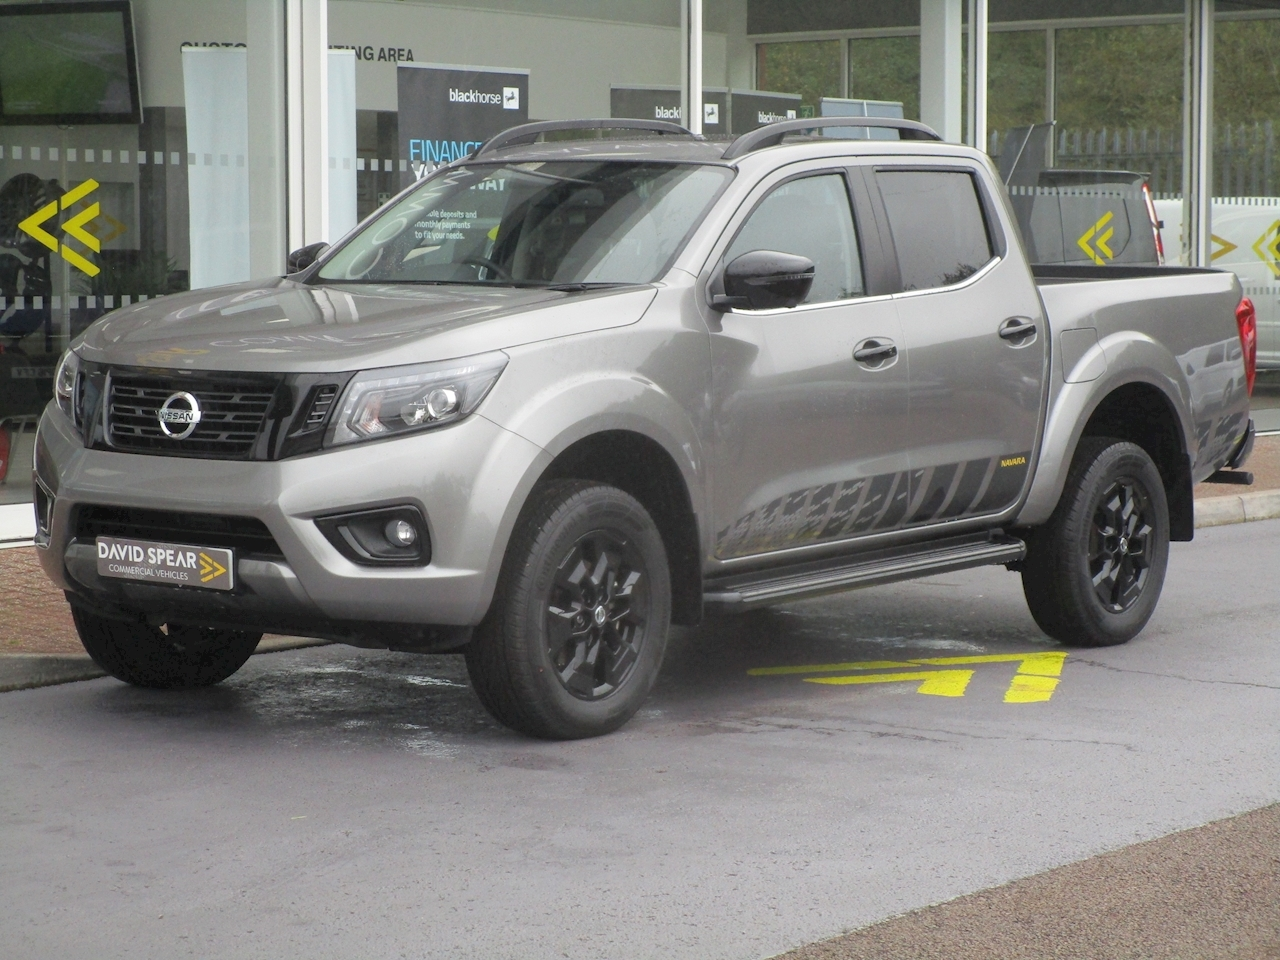 New 2019 Nissan Navara Dci 190ps 4x4 Double Cab Pick Up Tt N Guard 4drive With Sun Roof Sat Nav Rev Cam 2 3 4dr Pickup Manual Diesel For Sale In